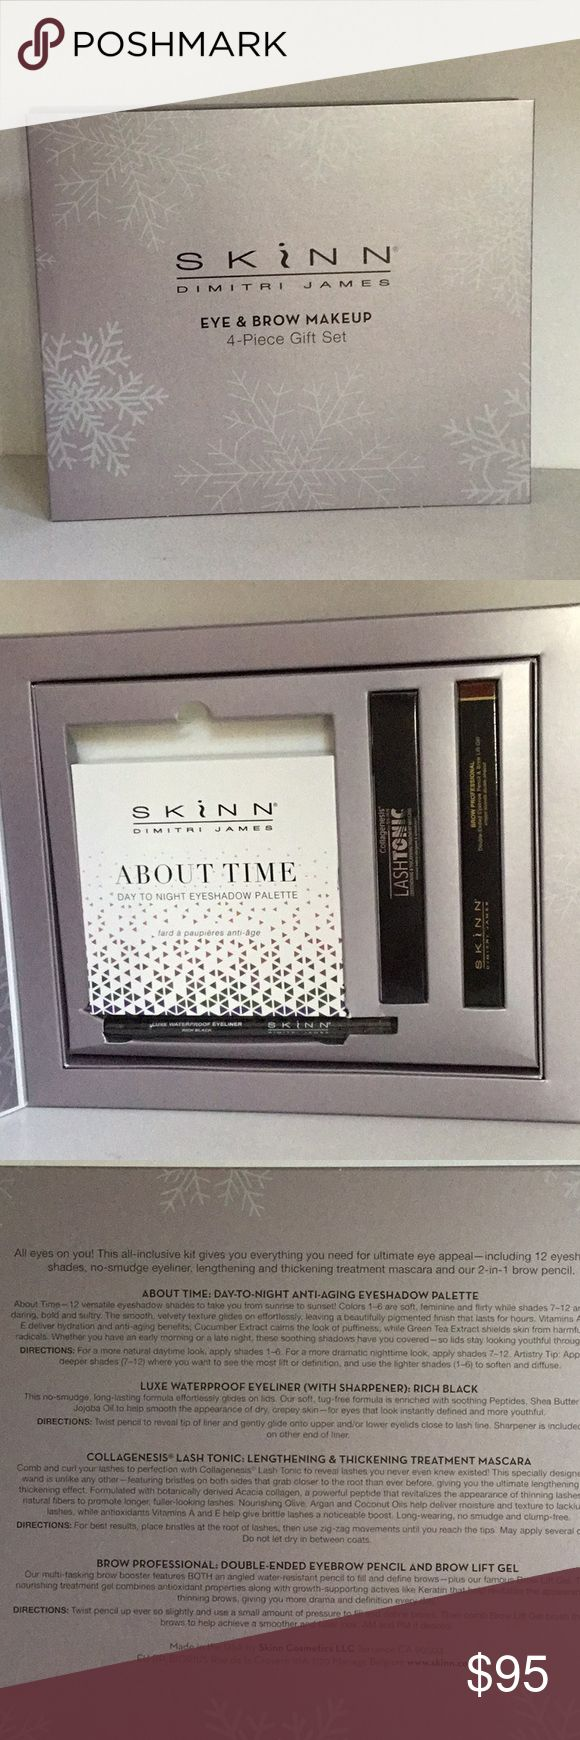 Eye Shadow Palette 12 shades AUTHENTIC NIB and sealed anti-aging eyeshadow palette of 12 colors from SKINN cosmetics. Colors range from soft to bold and sultry. Vitamins A, C and E deliver hydration and anti-aging benefits. SKINN Makeup